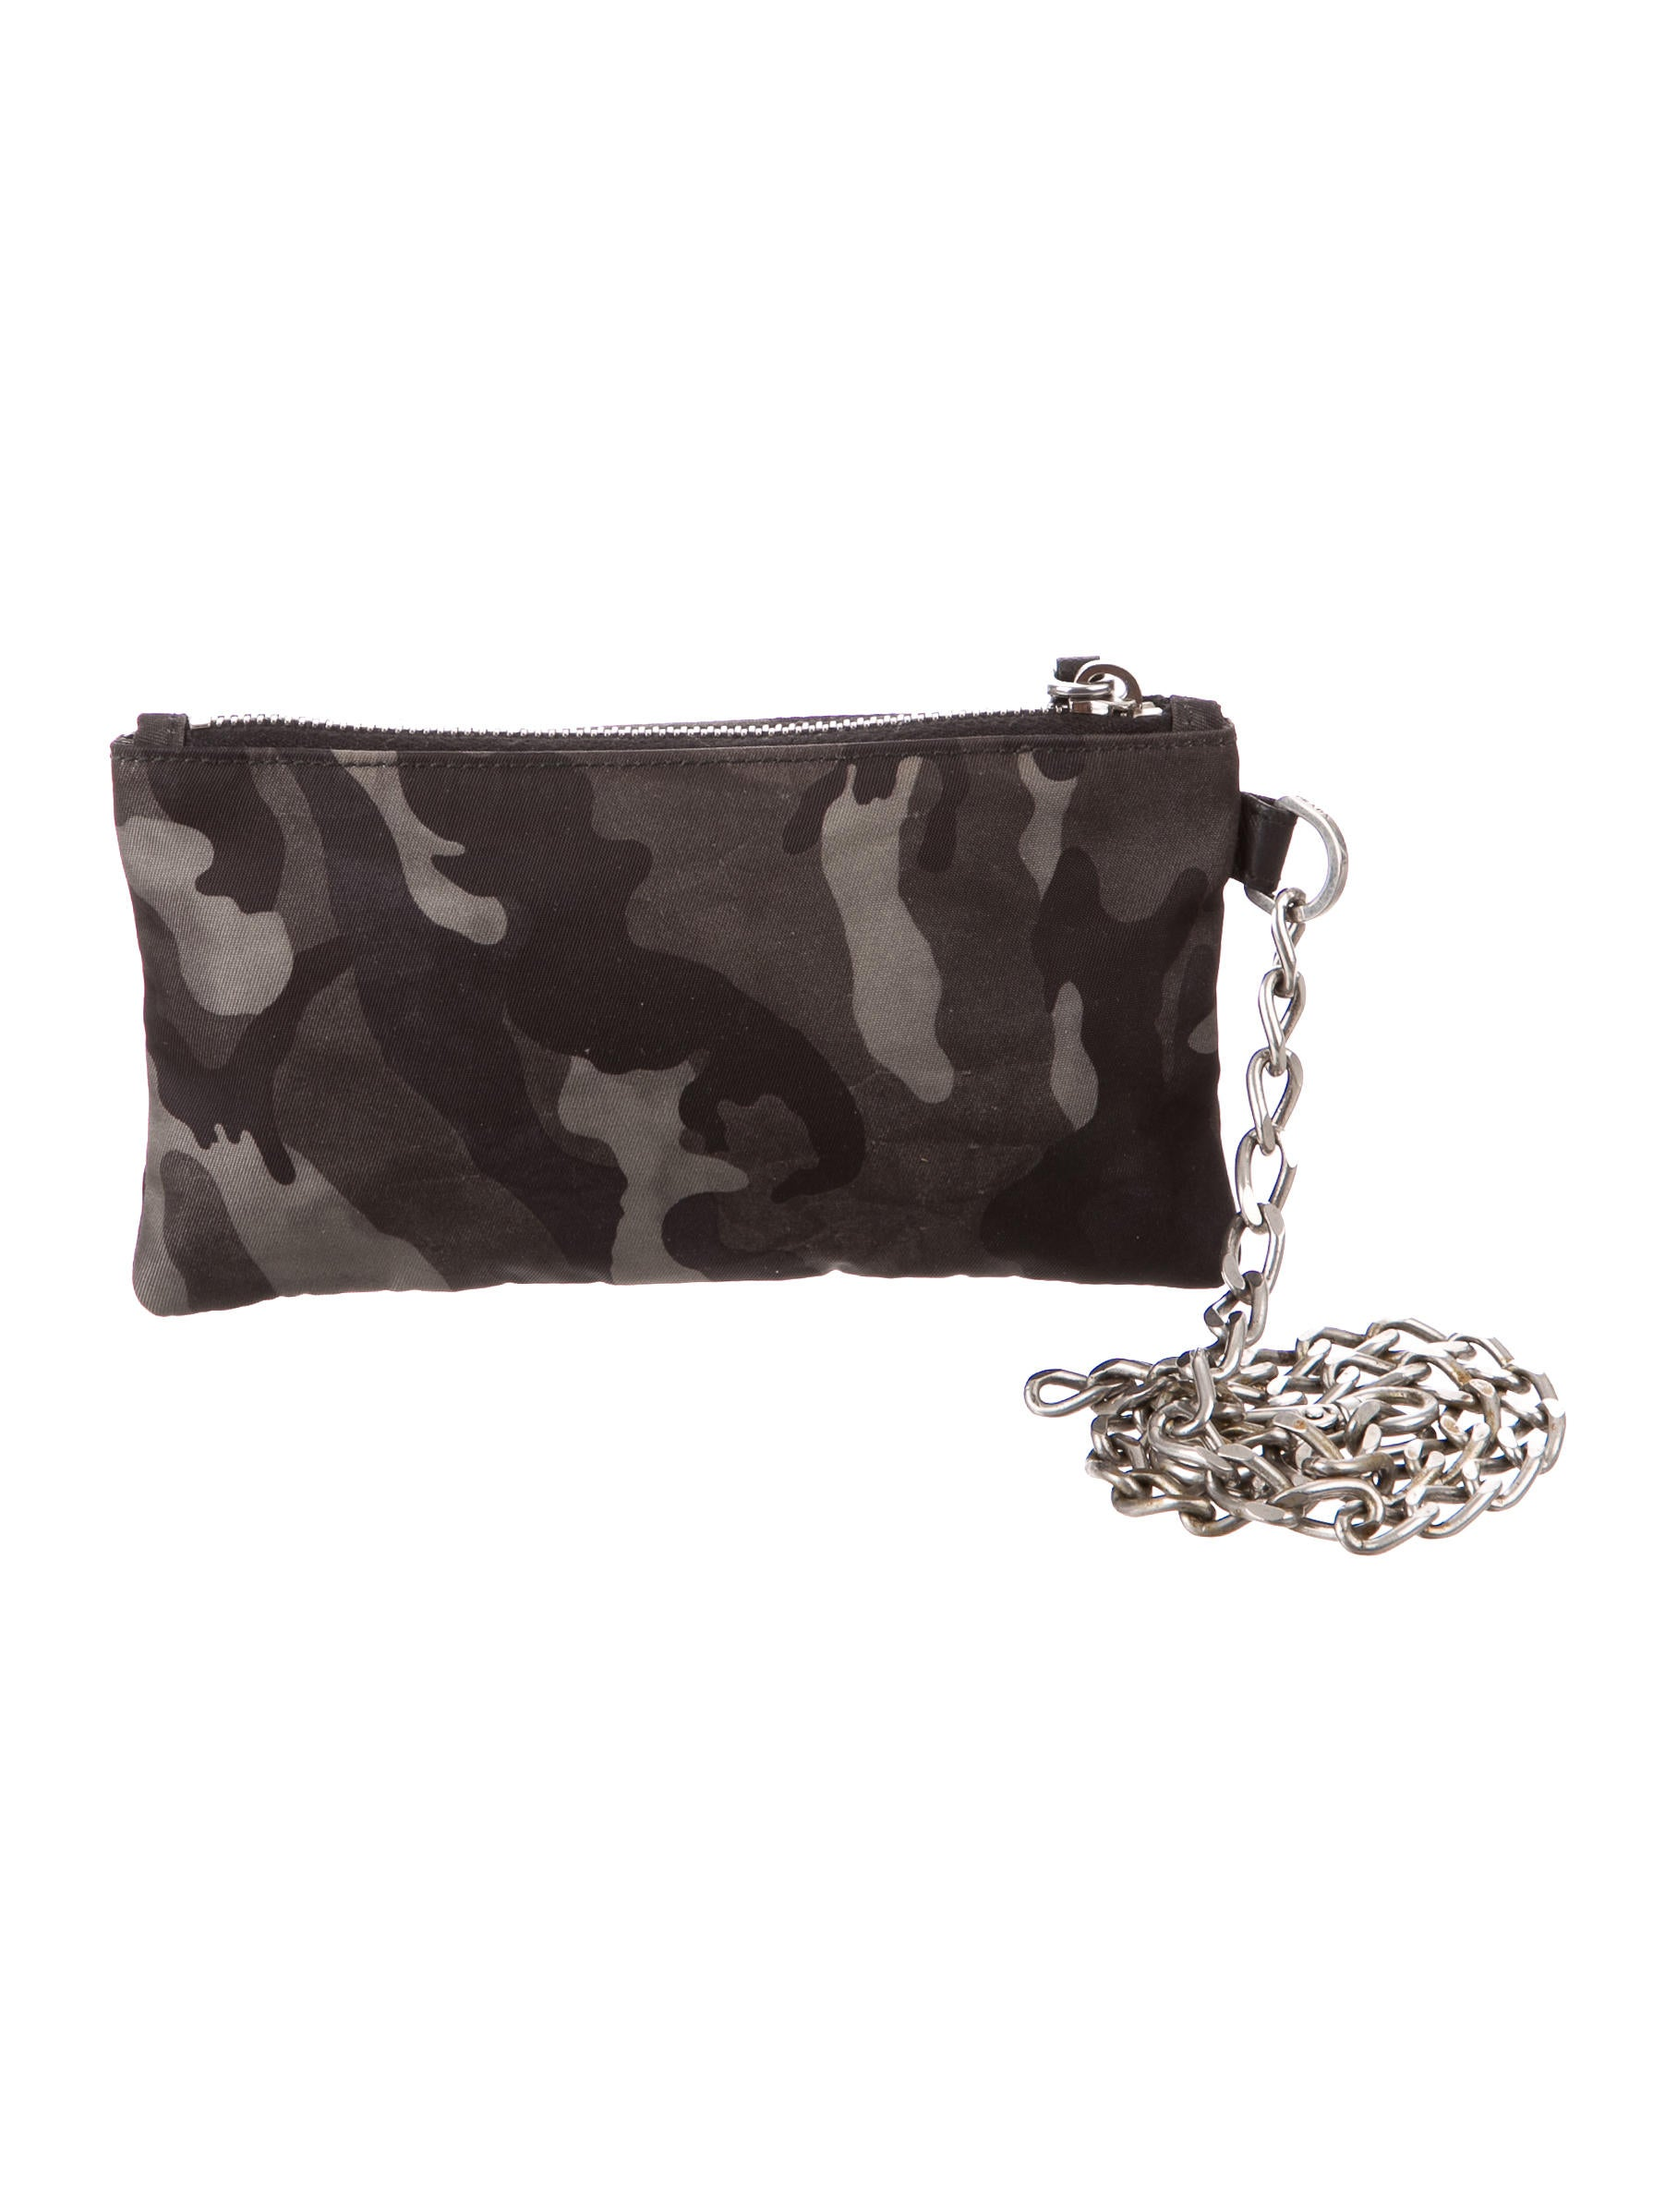 c83b906427b73f Prada Green Mens Wallet With Chain | Stanford Center for Opportunity ...